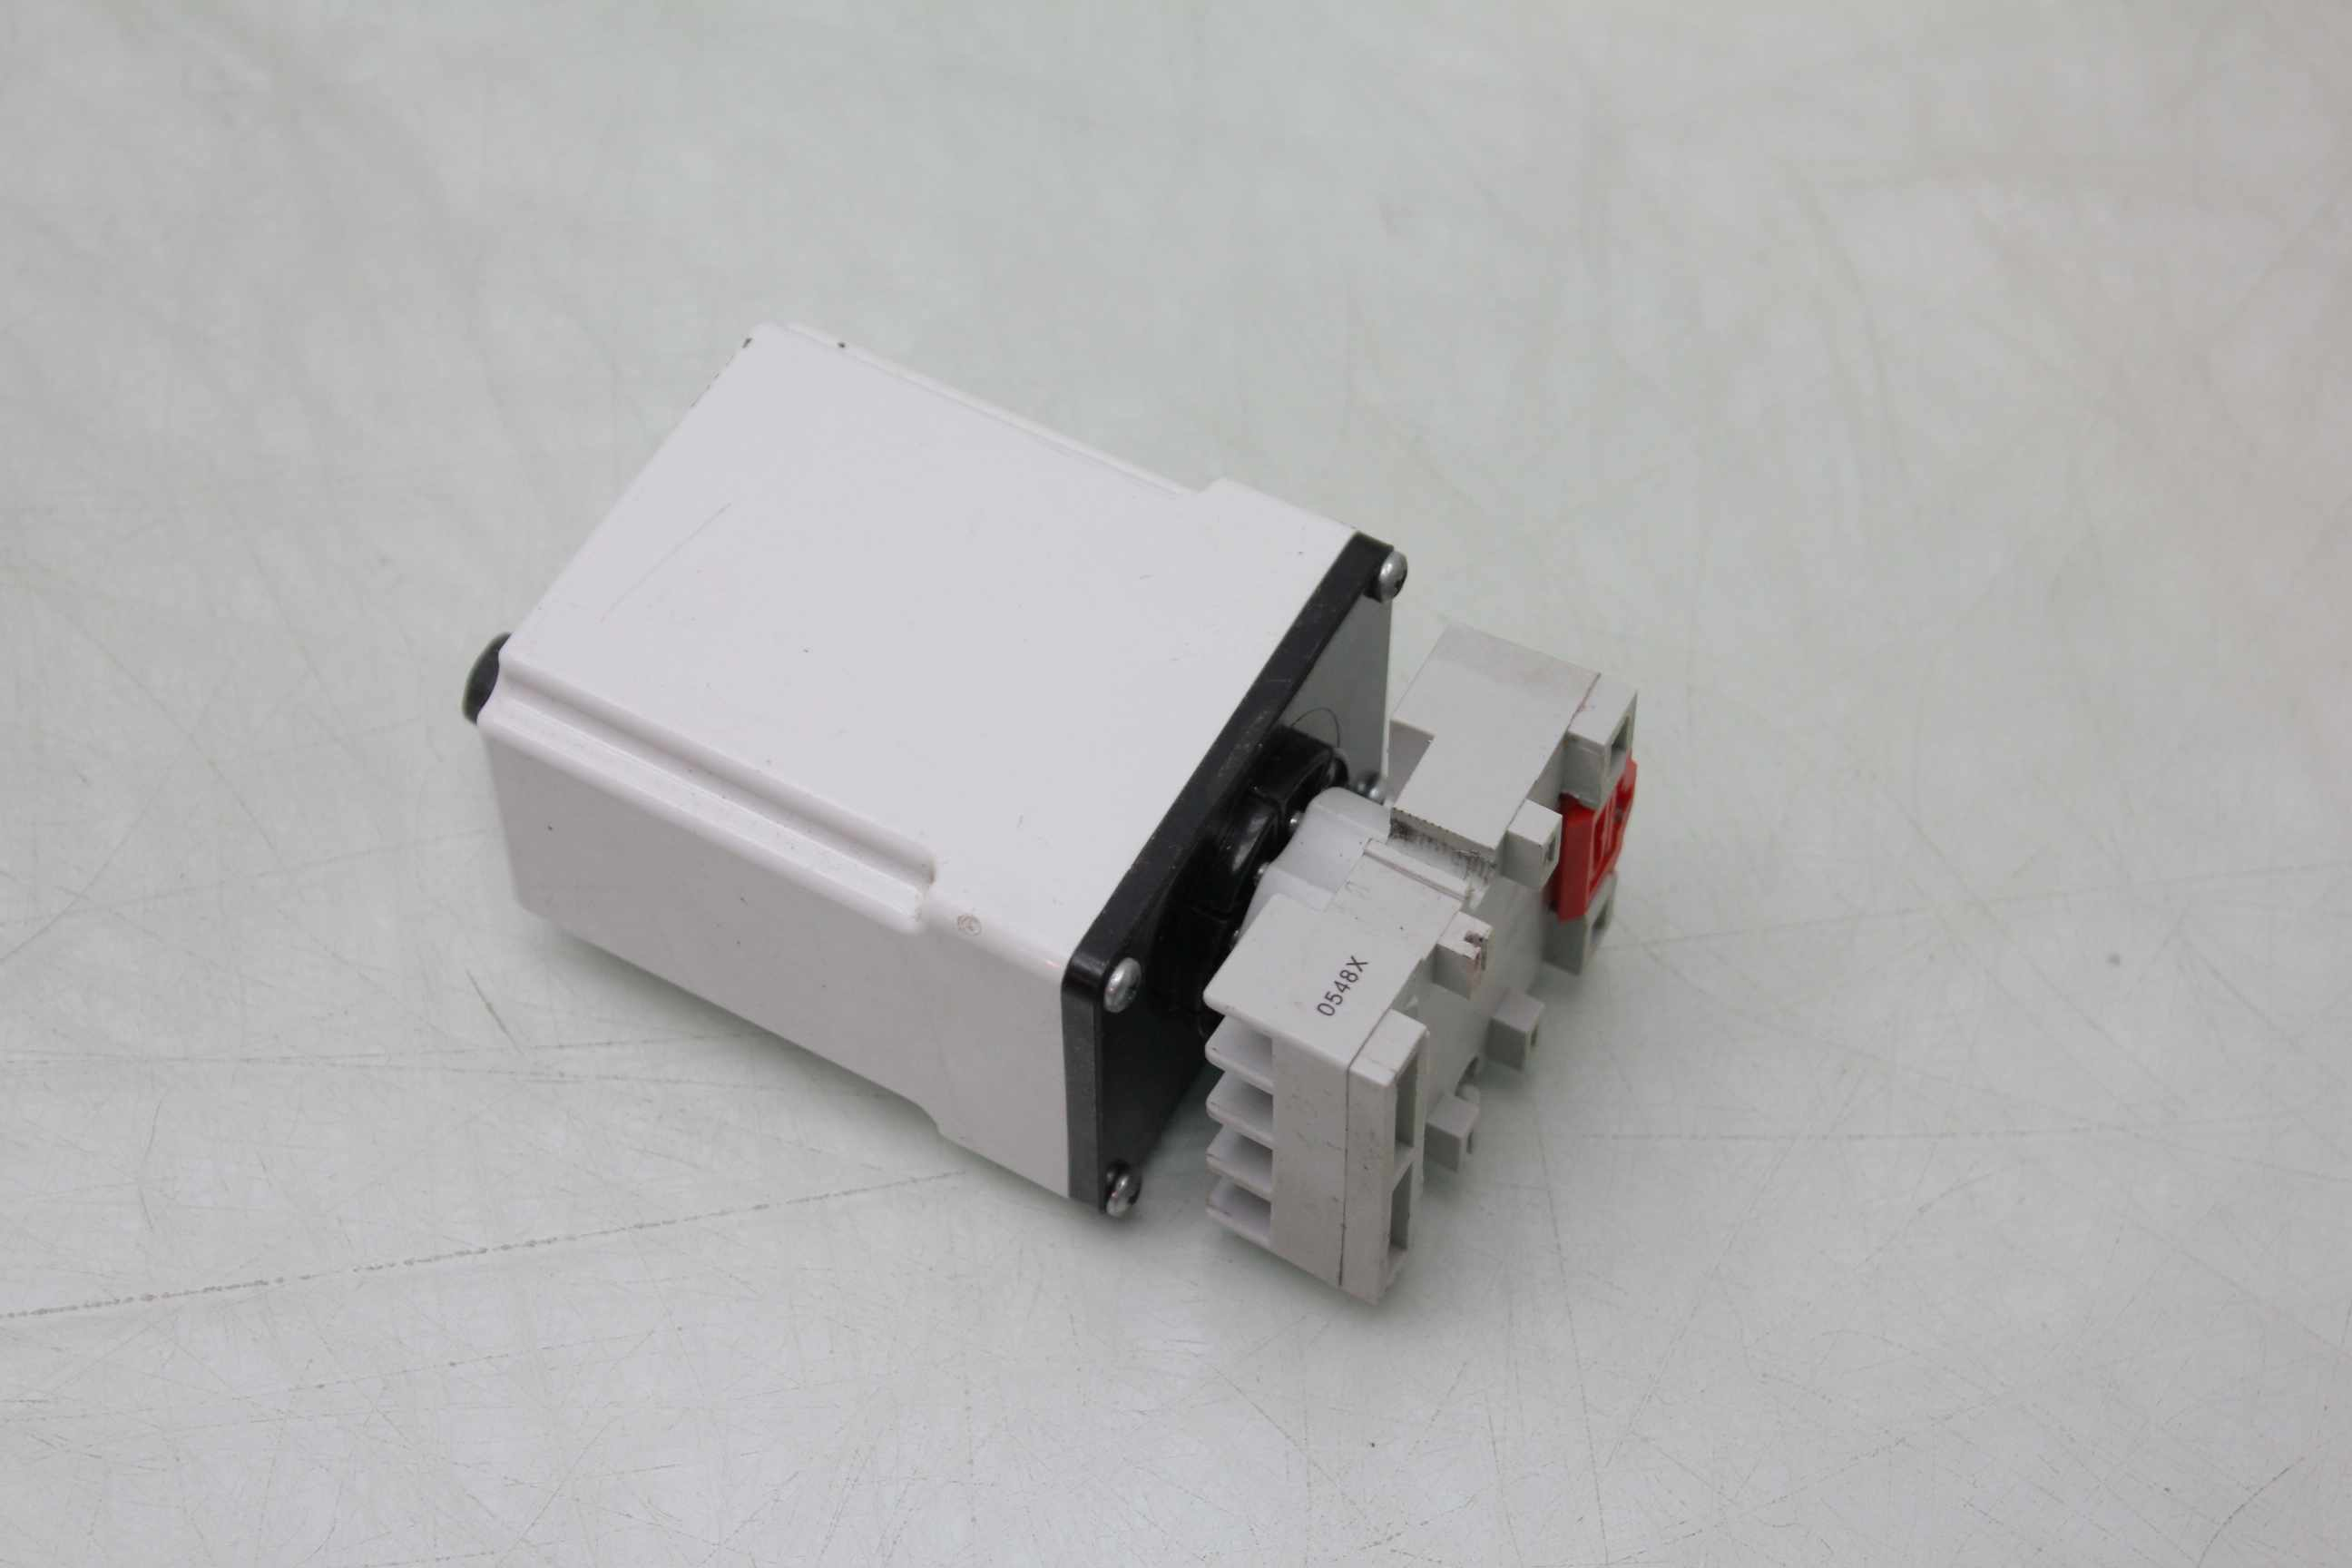 2 Macromatic TR-50224-08 Time Delay Relays 0.6s - 60s Range with Socket on